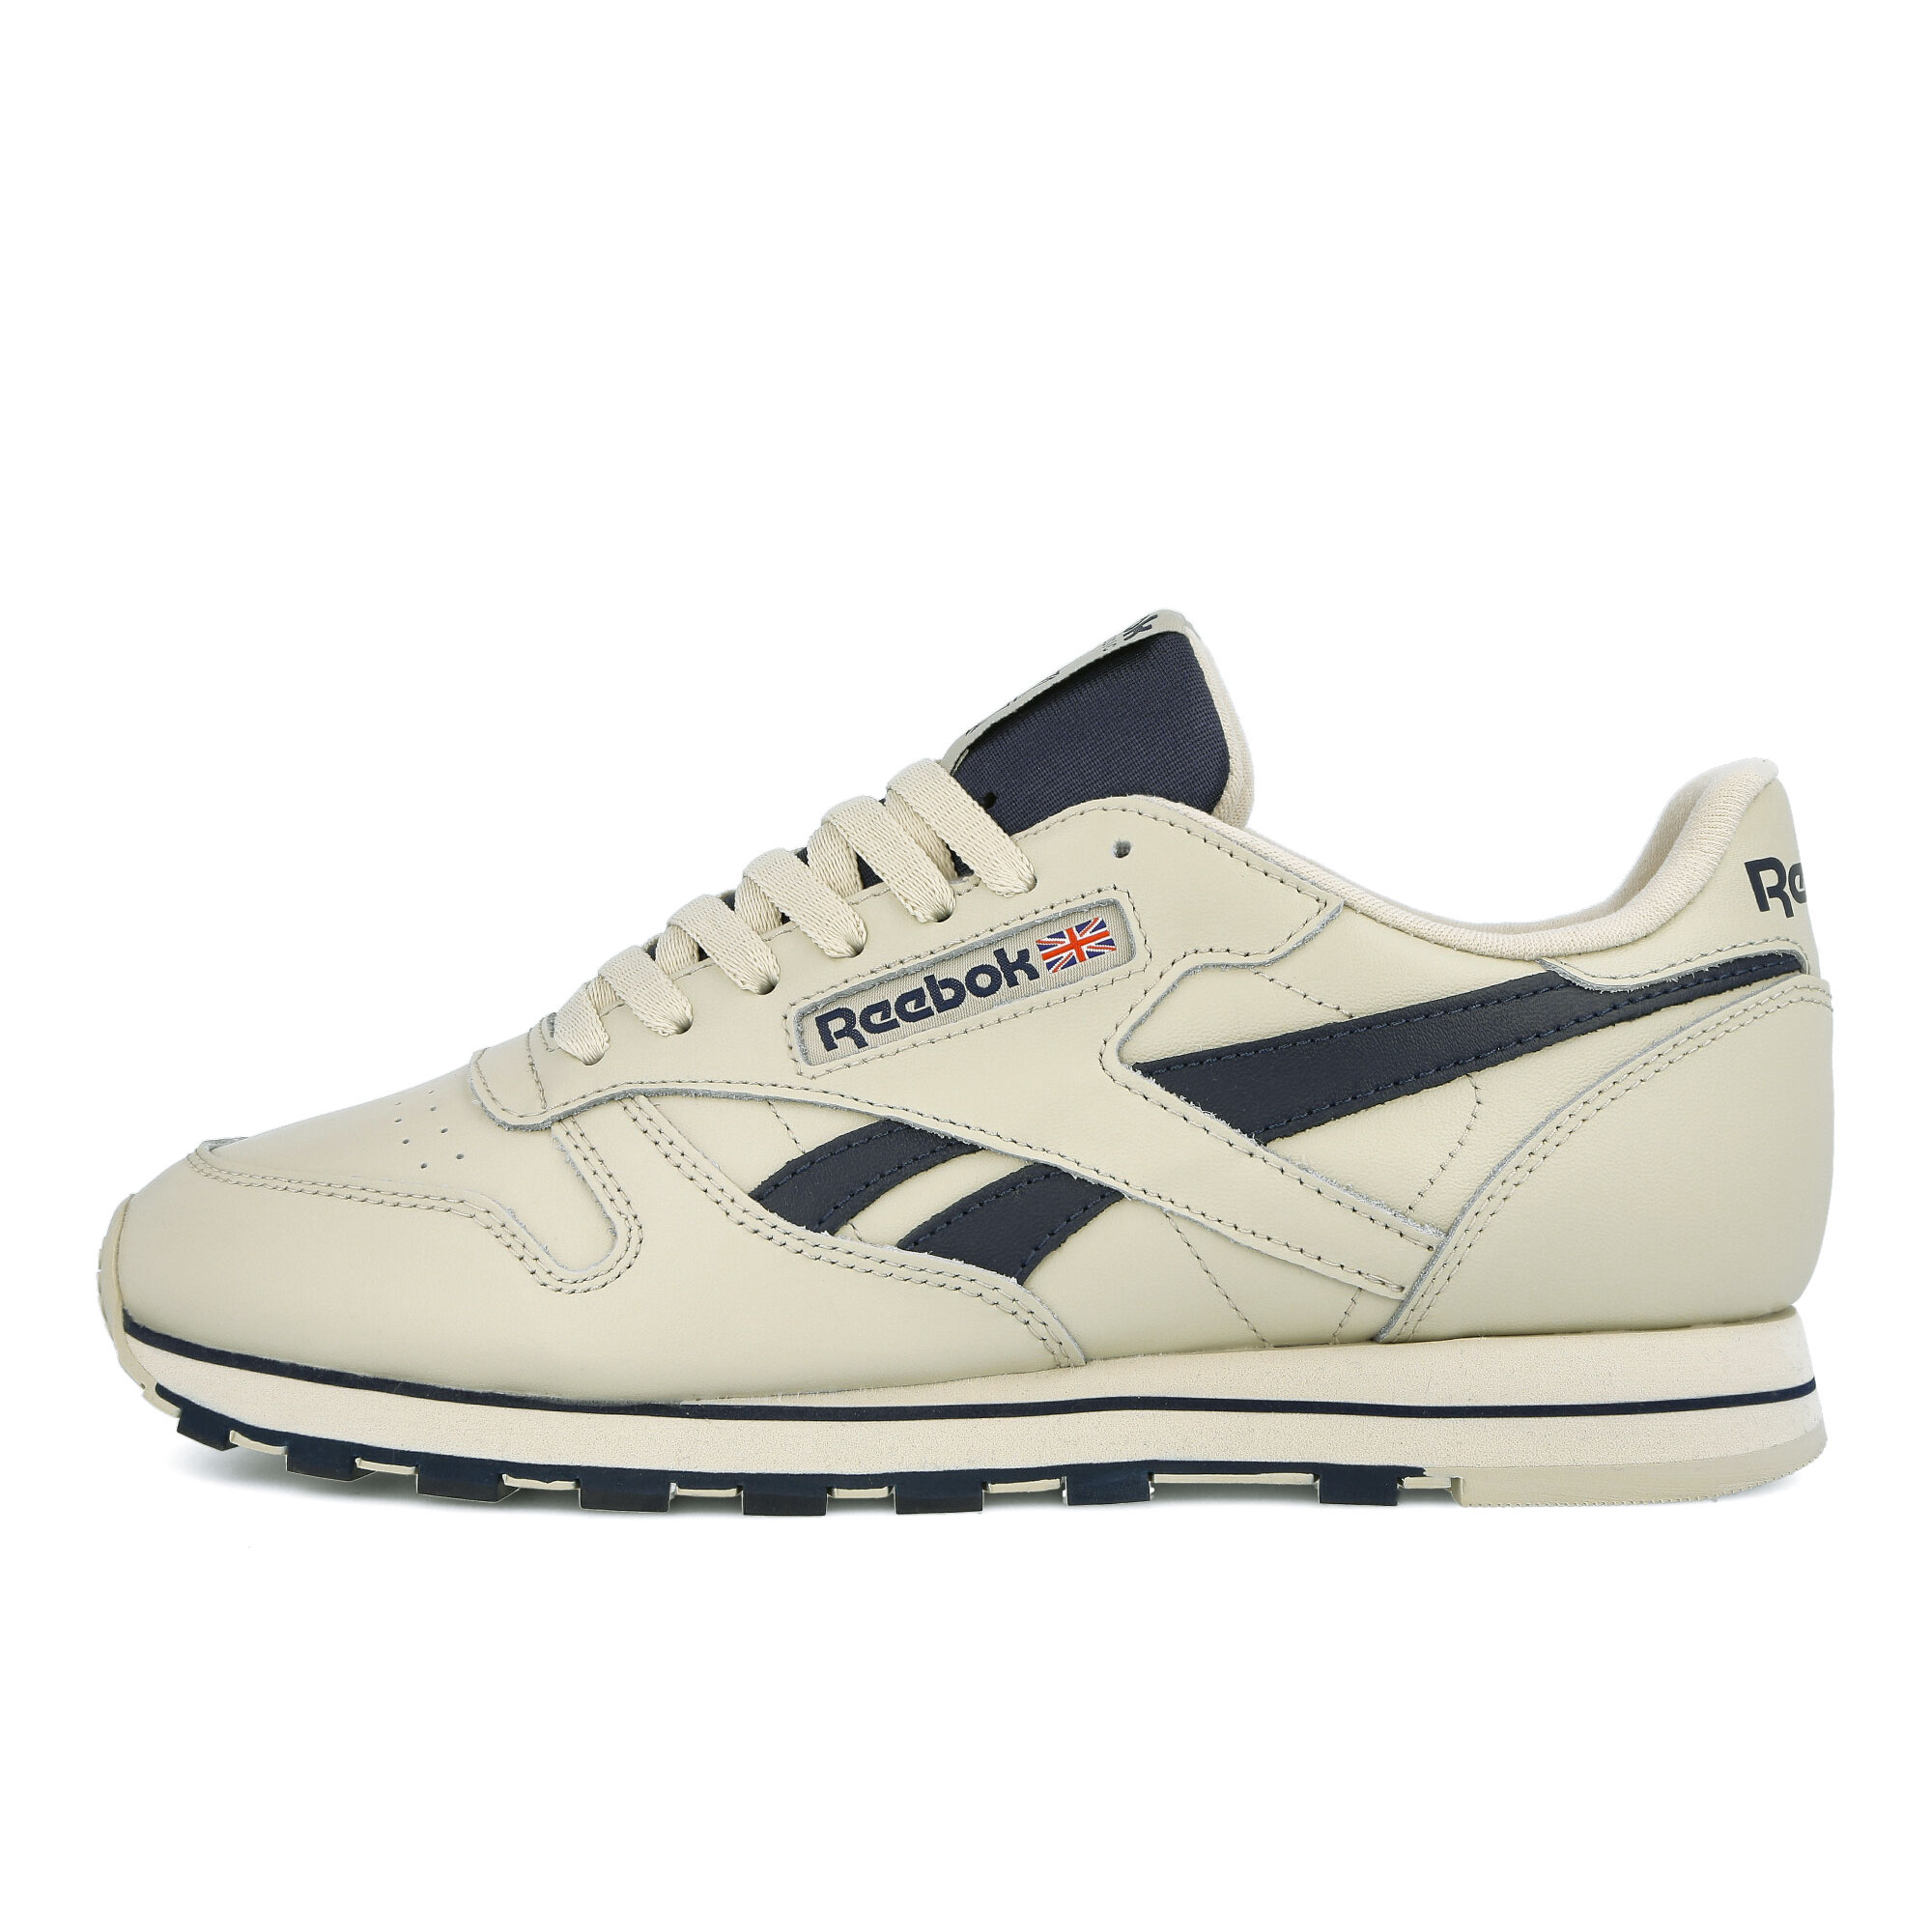 Reebok Classic Leather Mu Mens Gray Leather Low Top Lace Up Sneakers Shoes